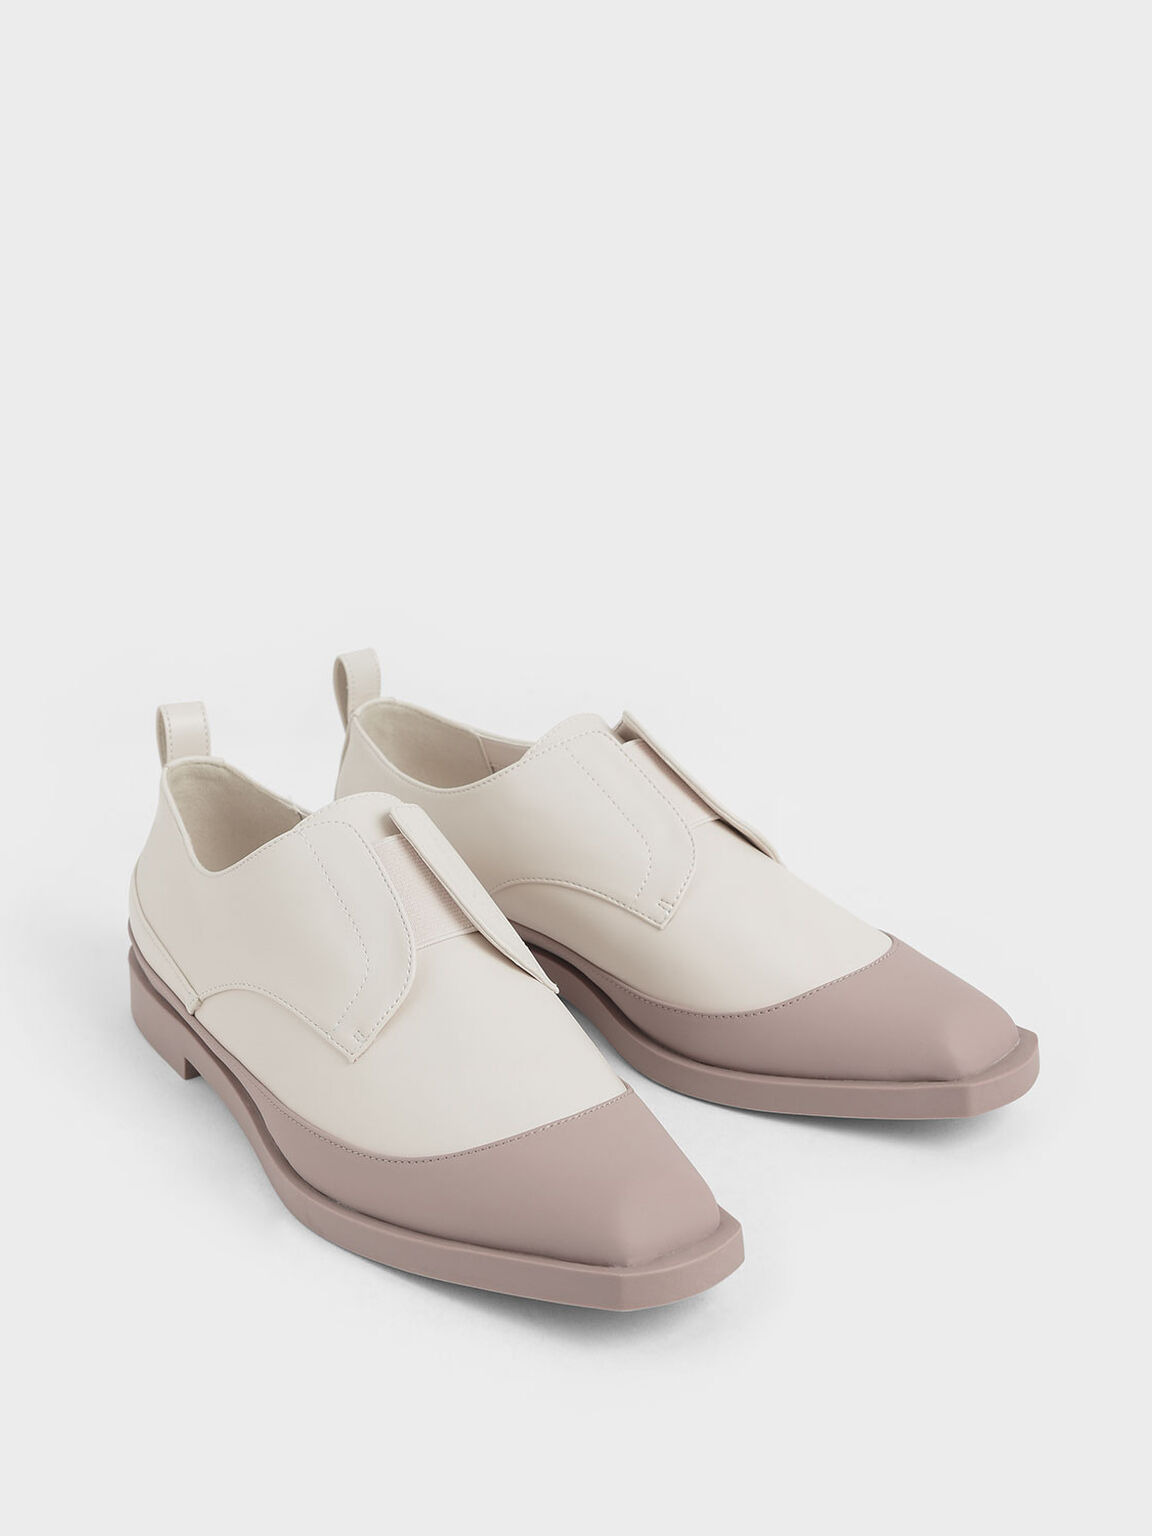 Two-Tone Loafers, Cream, hi-res